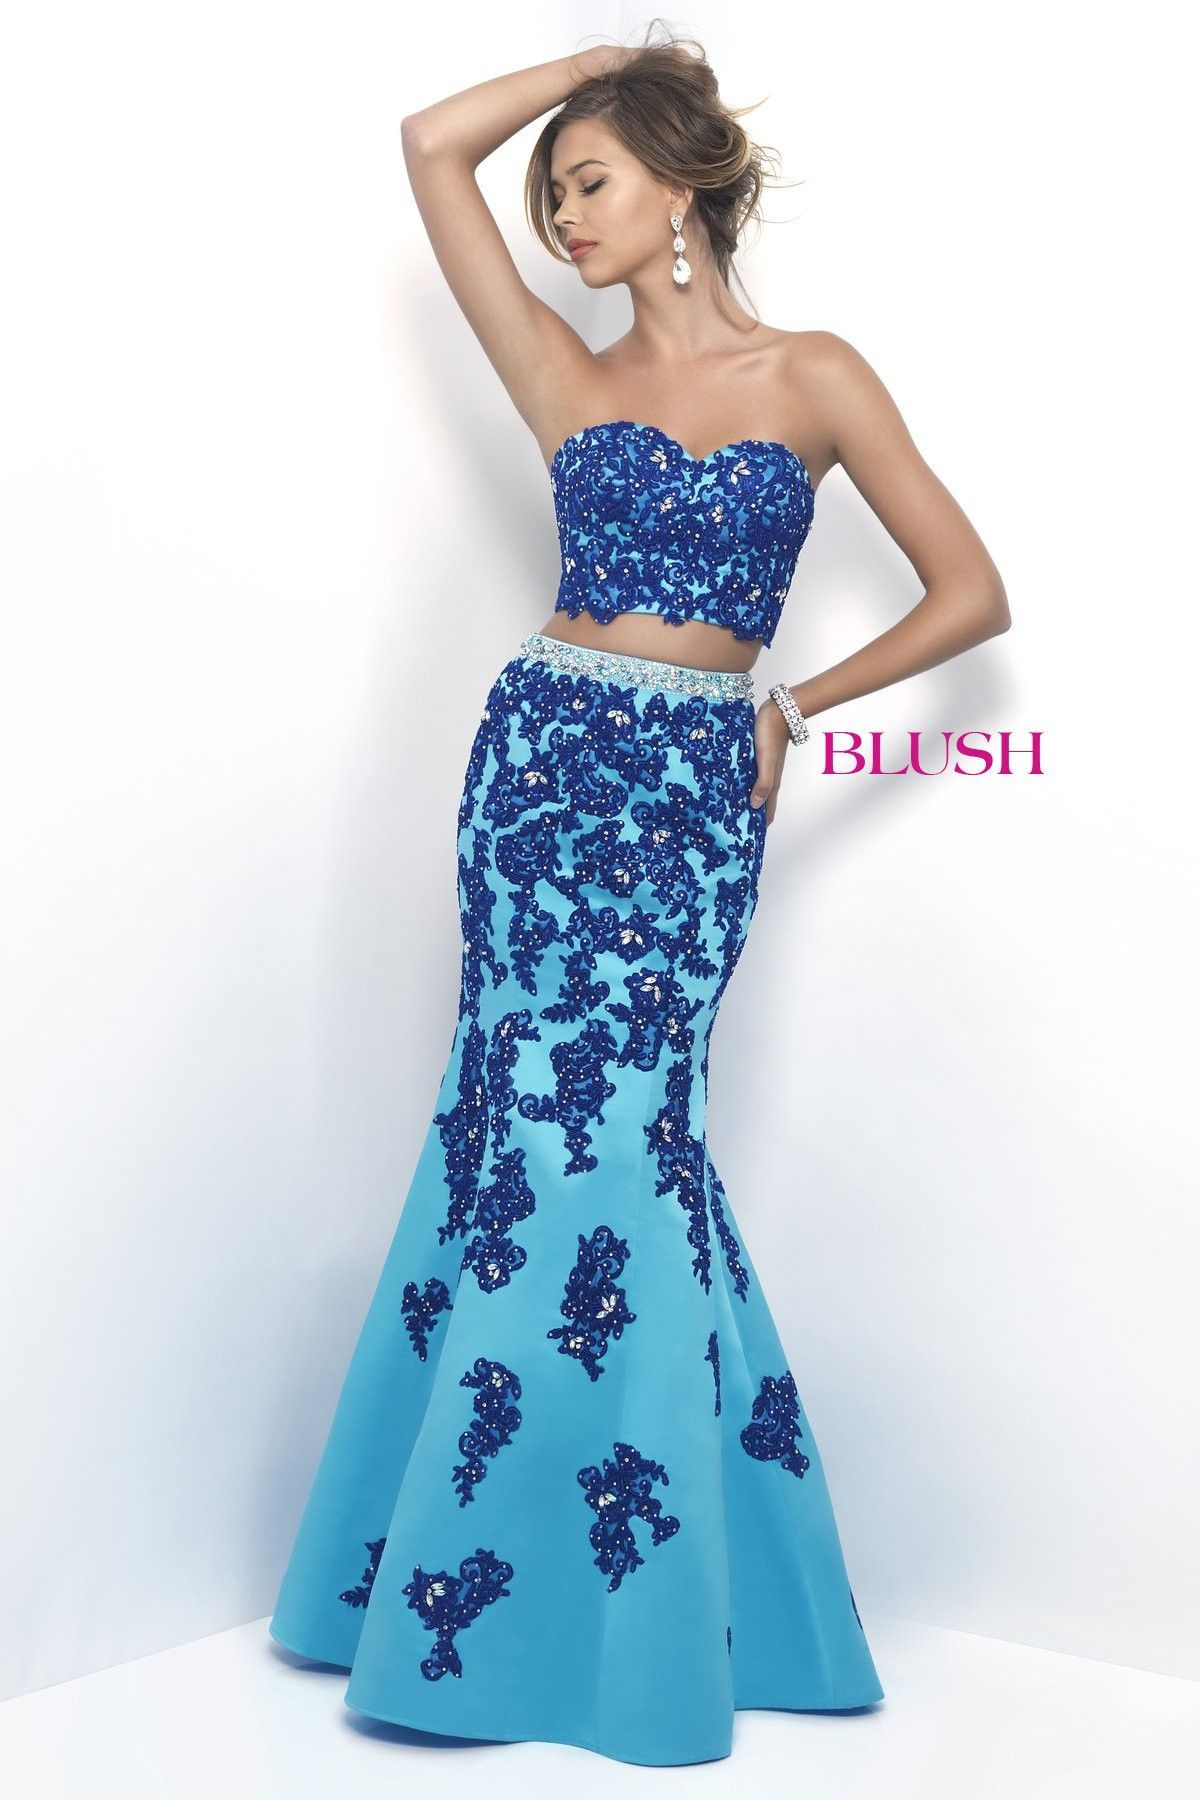 Blush prom pool bluesapphire lace embroidered twopiece prom